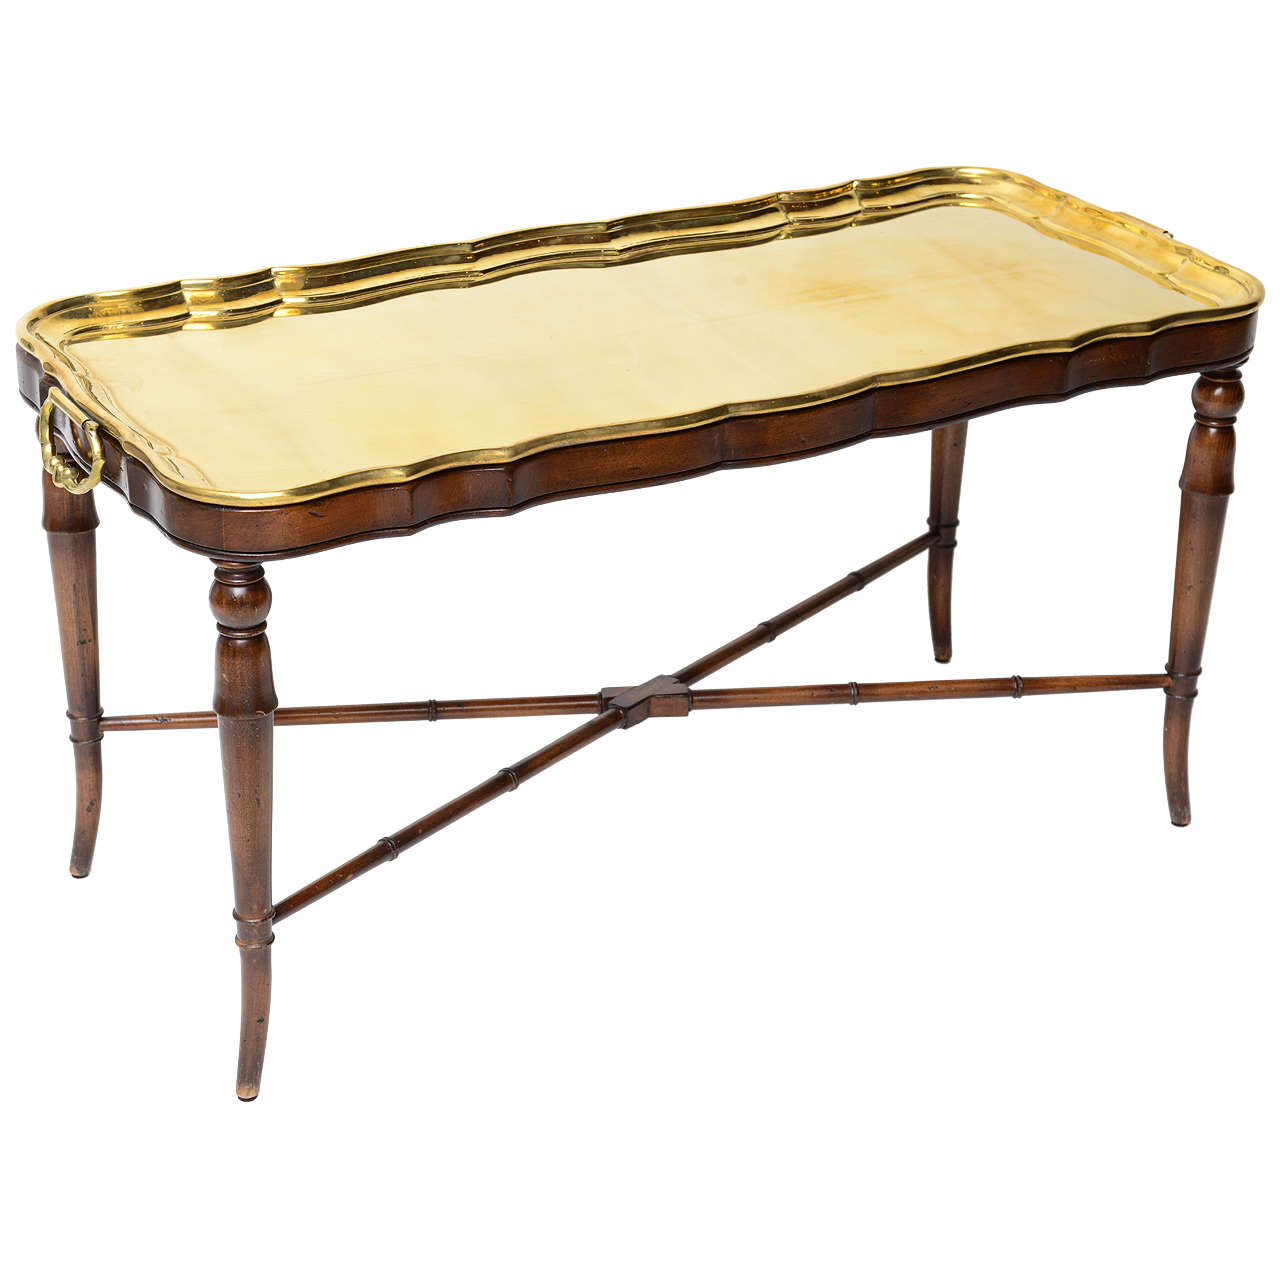 Classical Cocktail Table With Brass Tray At 1stdibs